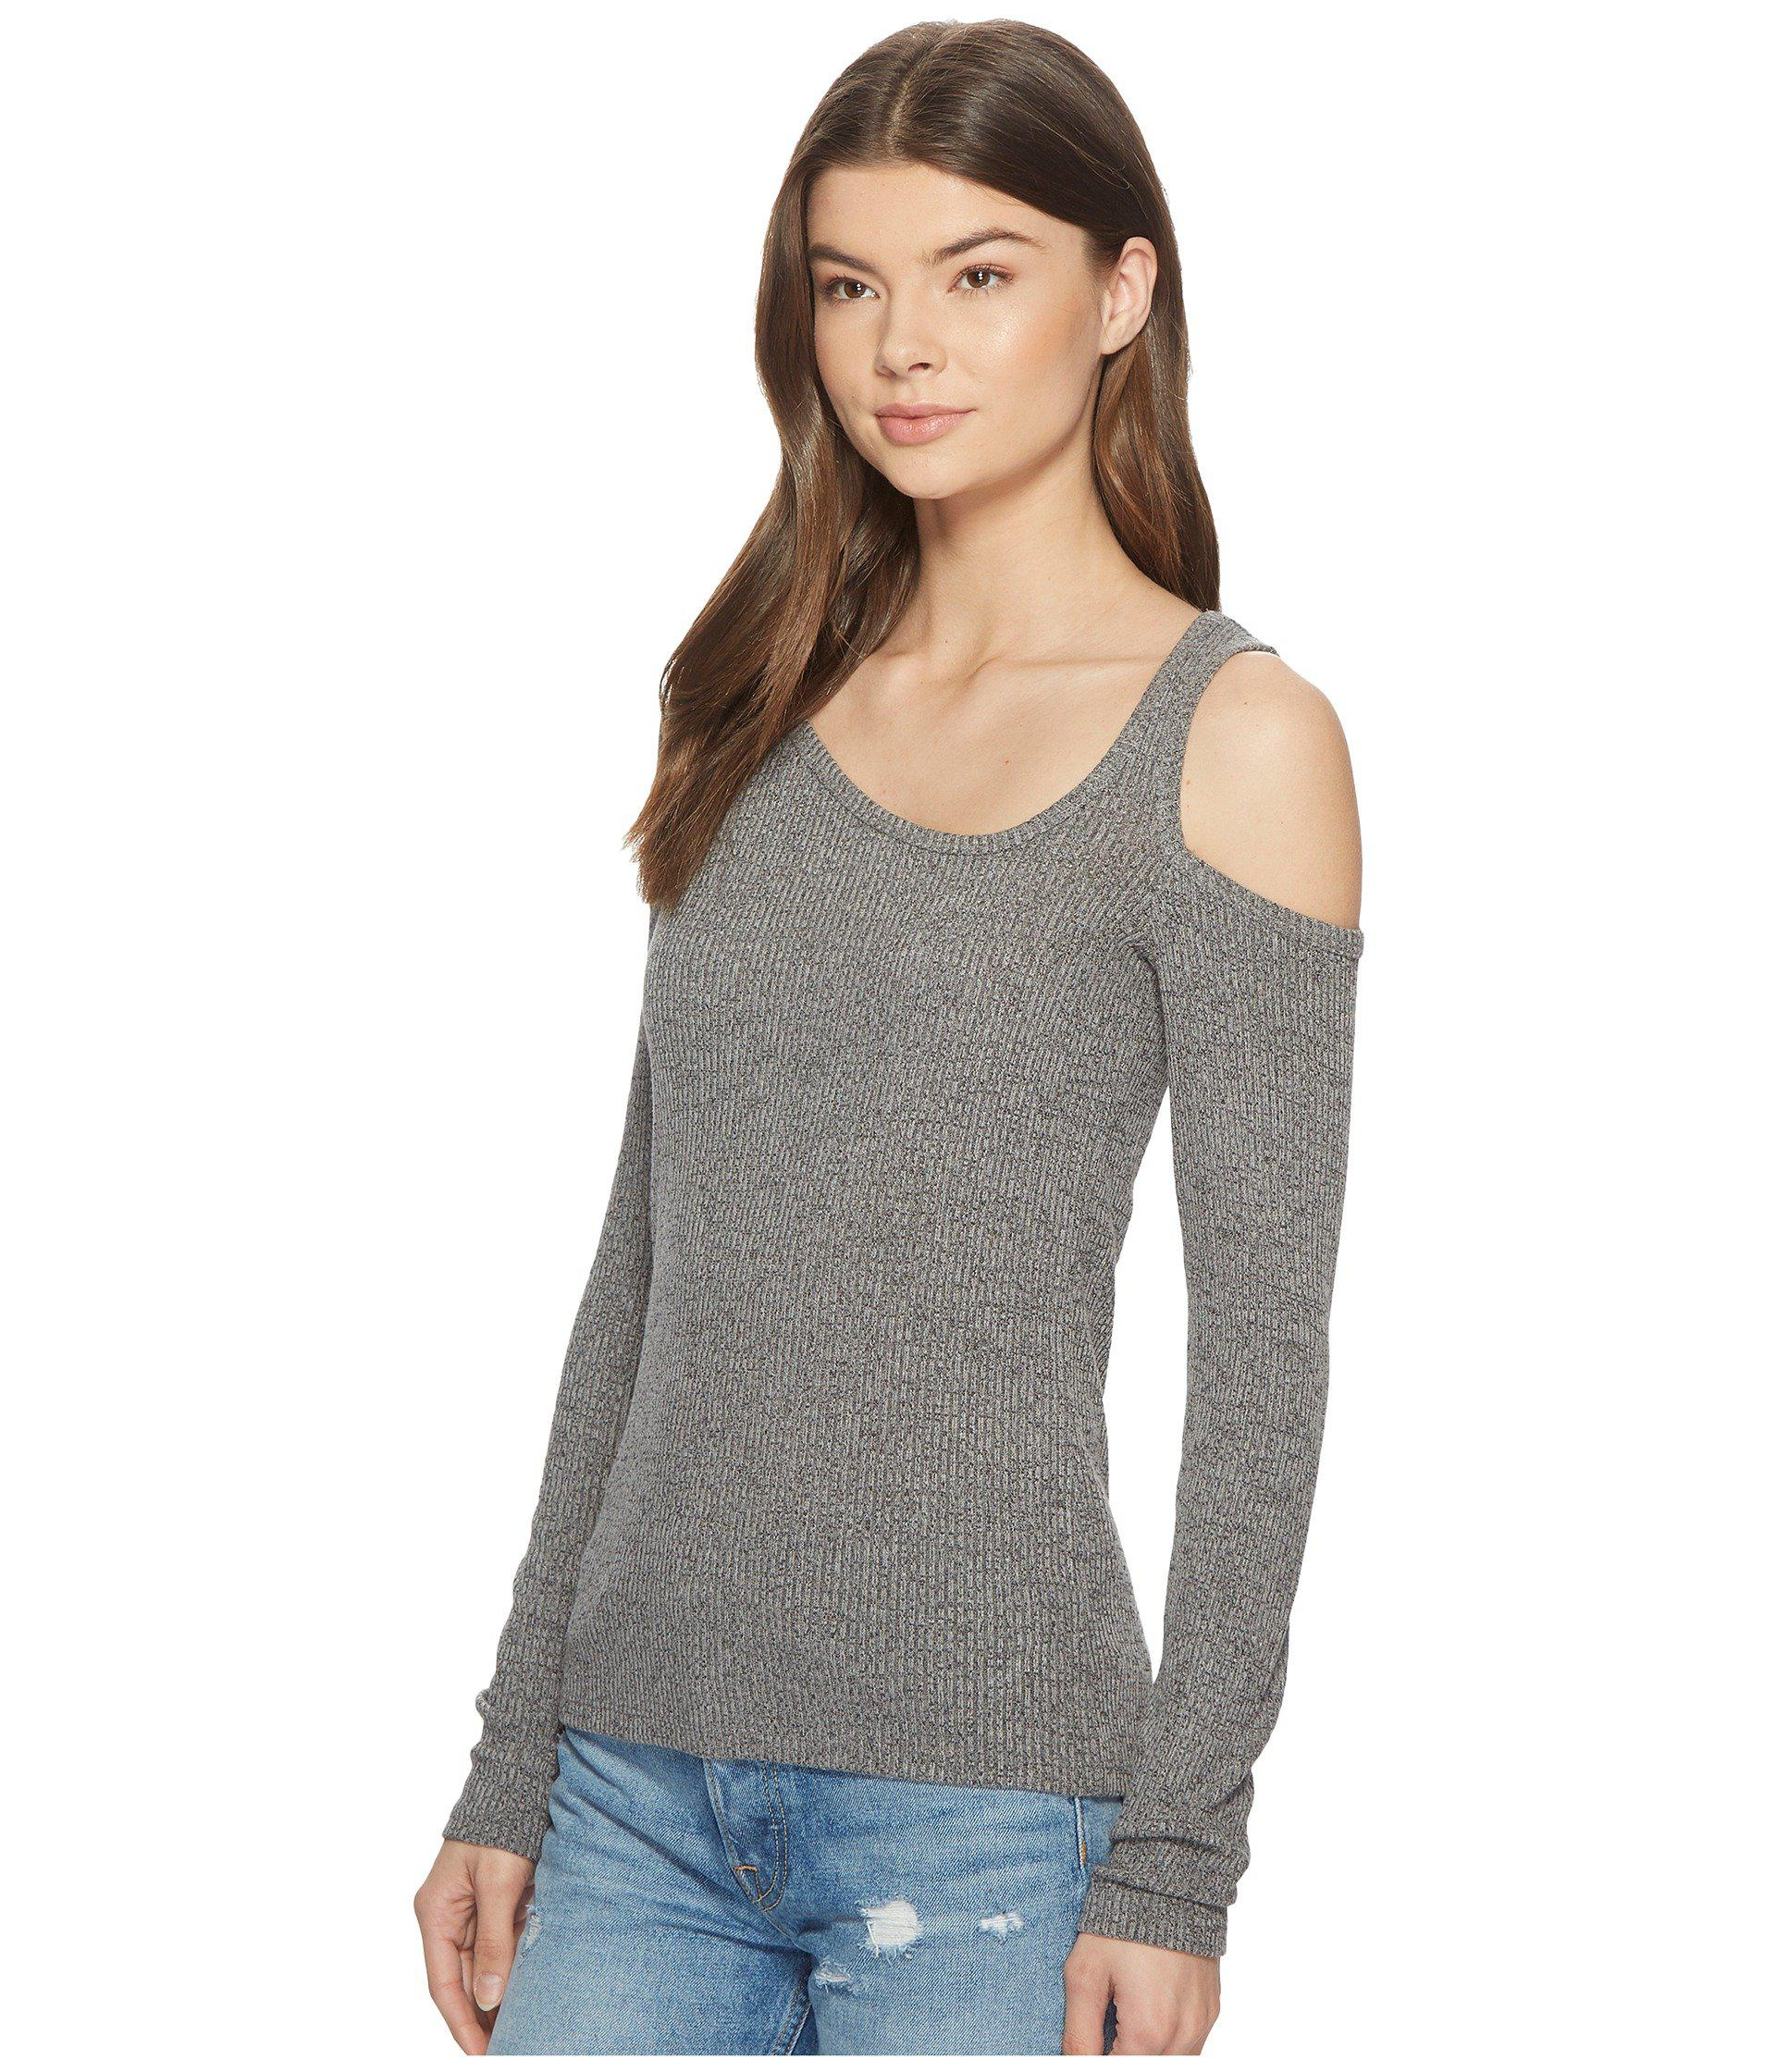 5bd60e3c4c7364 Lyst - Lucky Brand One Cold Shoulder Top in Gray - Save 55%